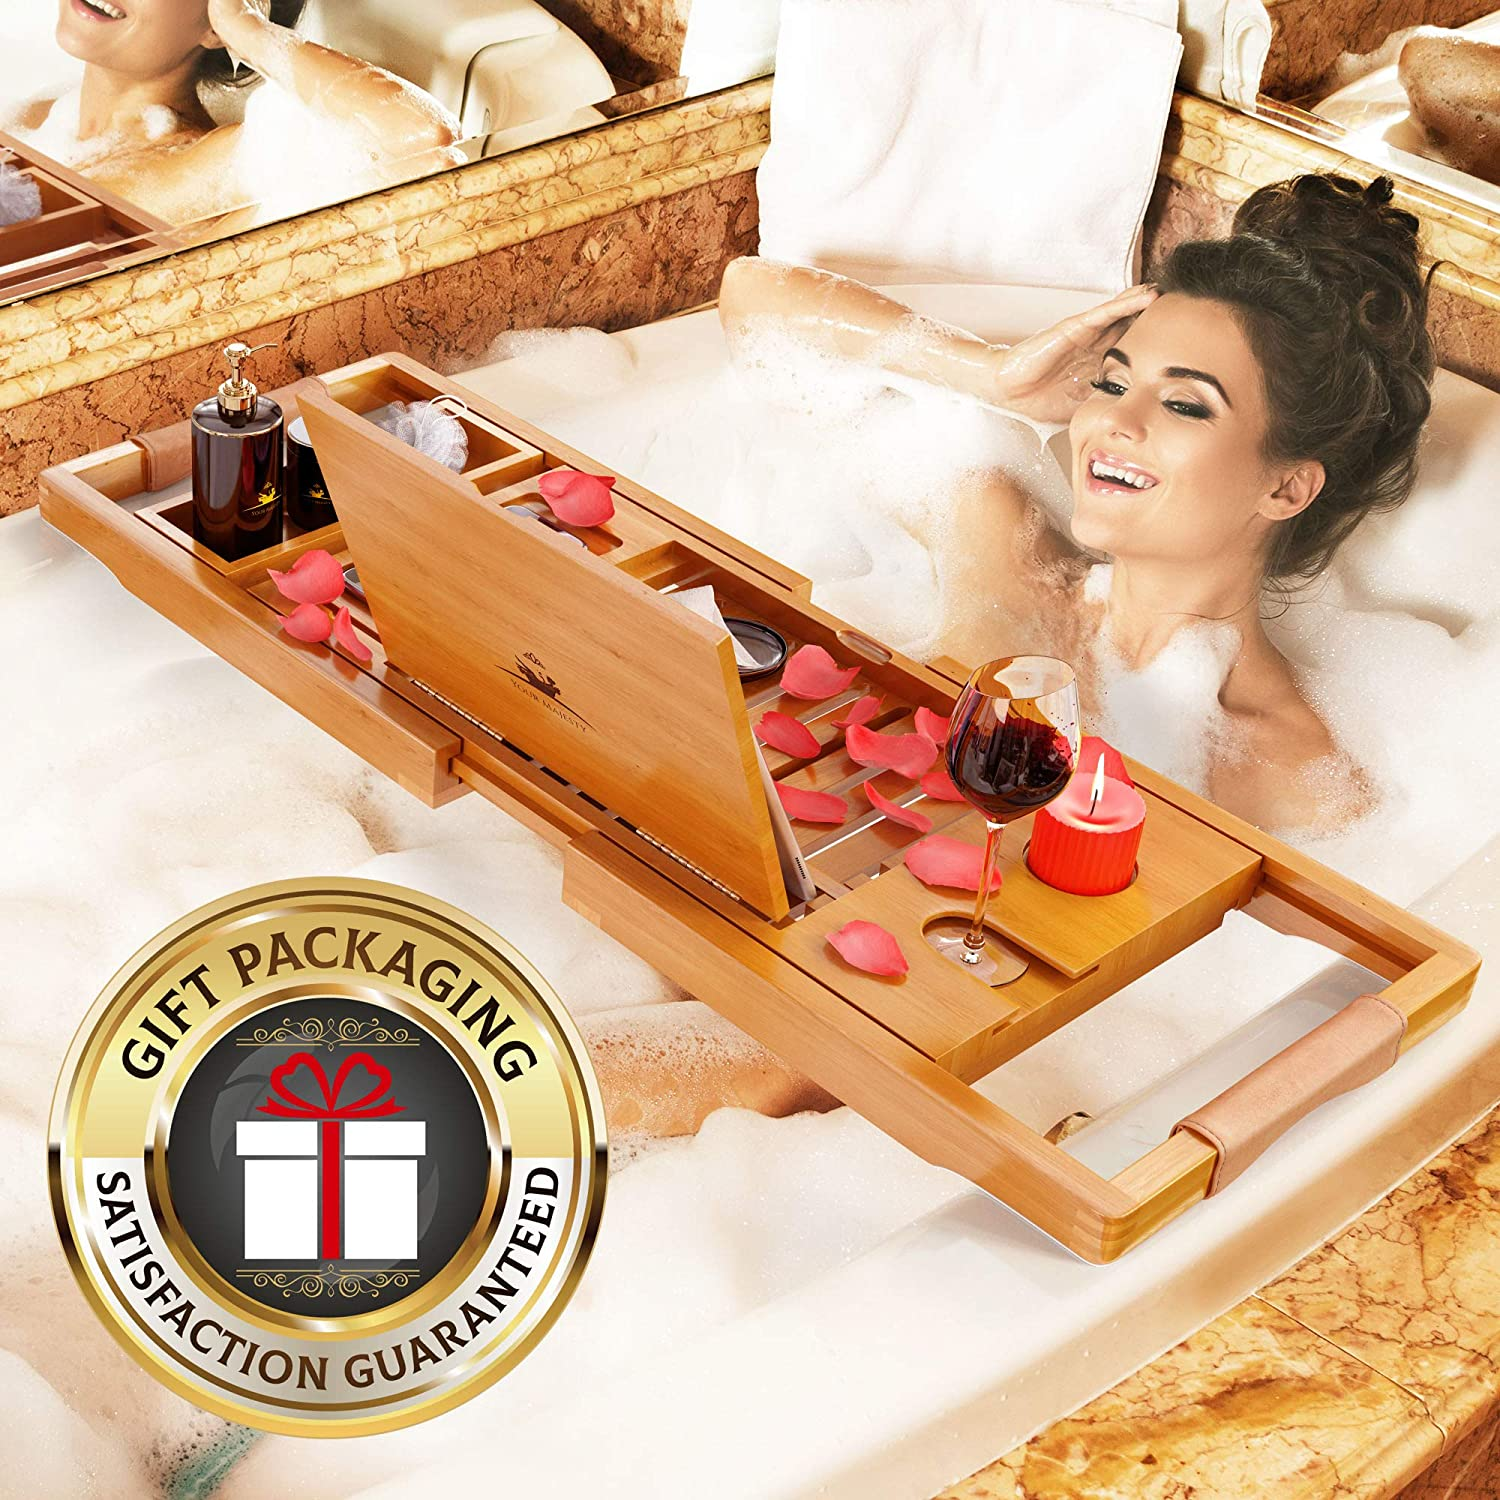 YM Lux Craft Bamboo Bathtub Caddy Tray [Durable, Non-Slip], 1-2 Adults Expandable Bathtub Tray, Beautiful Gift Box, Fits Any Tub Bath - Holds Book, Wine, Phone, Ipad, Laptop: Kitchen & Dining